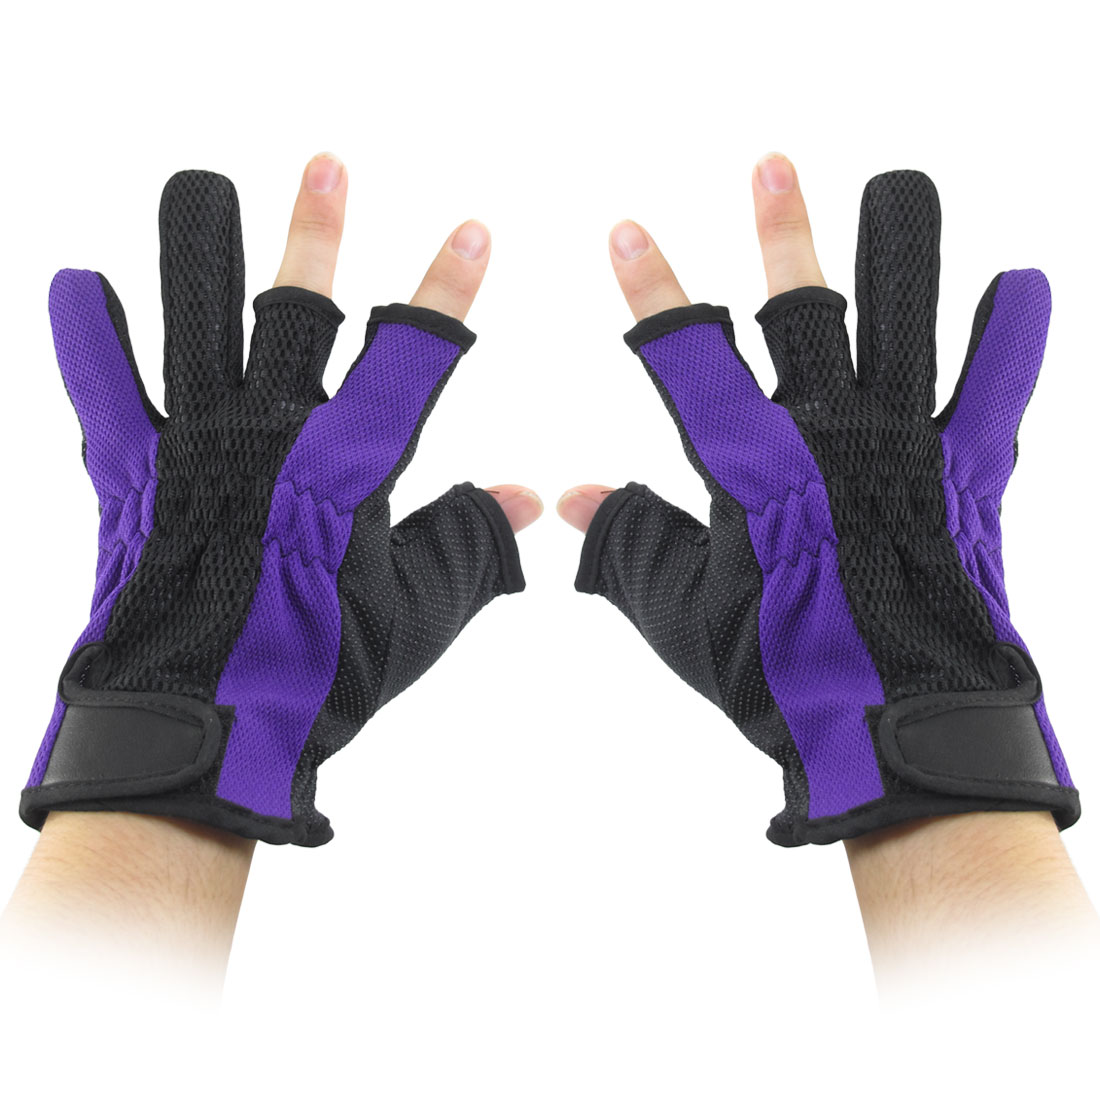 Nonslip Palm Detachable Closure 3 Fingerless Purple Black Fishing Gloves